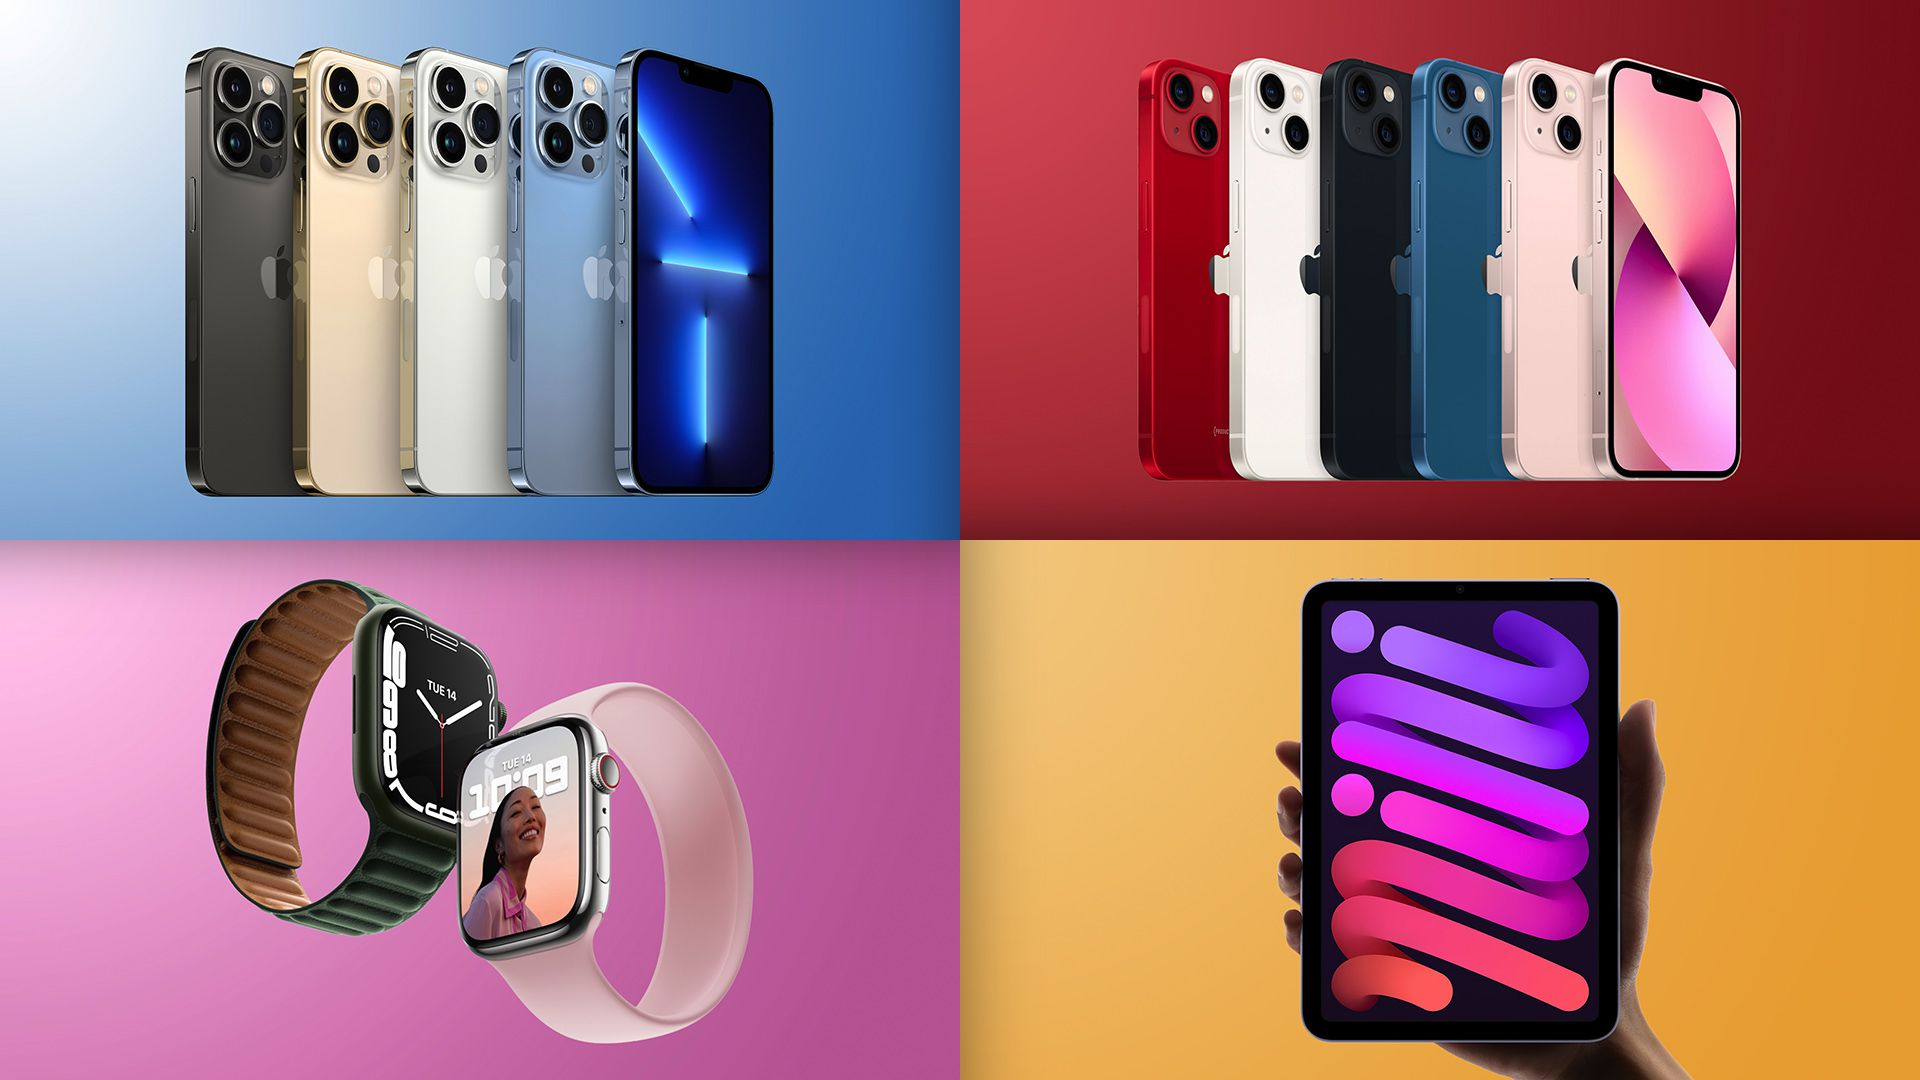 photo of Top Stories: iPhone 13, Apple Watch Series 7, New iPads, and More image